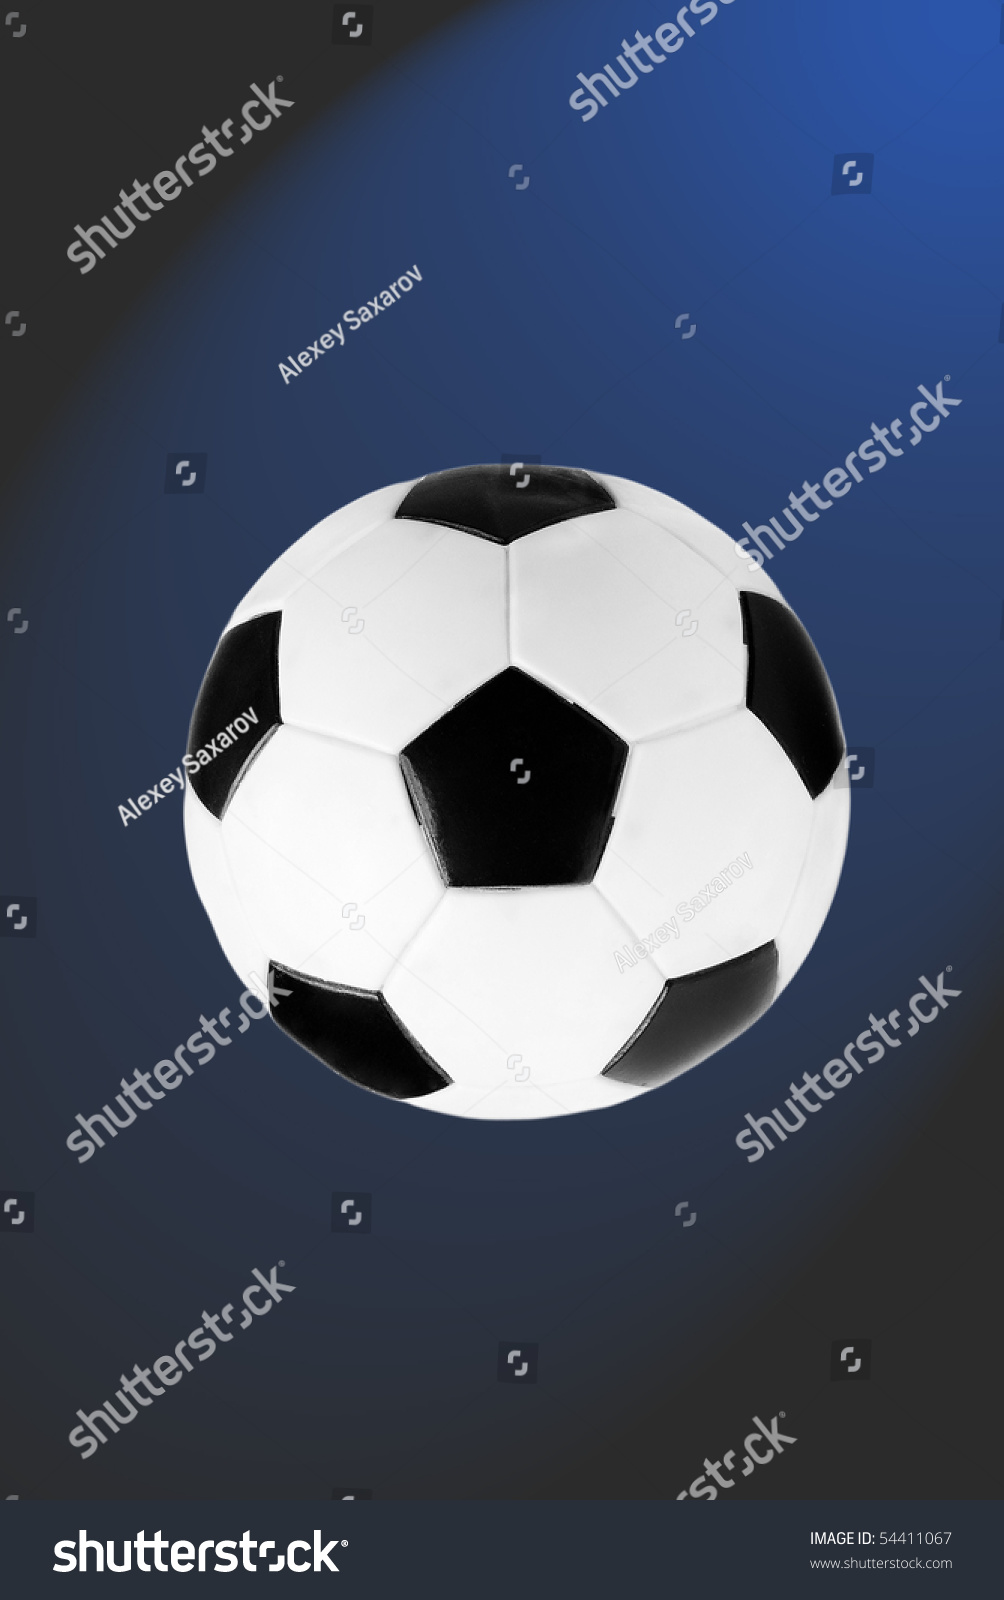 Black and white soccer ball isolated on the blue and grey gradient background